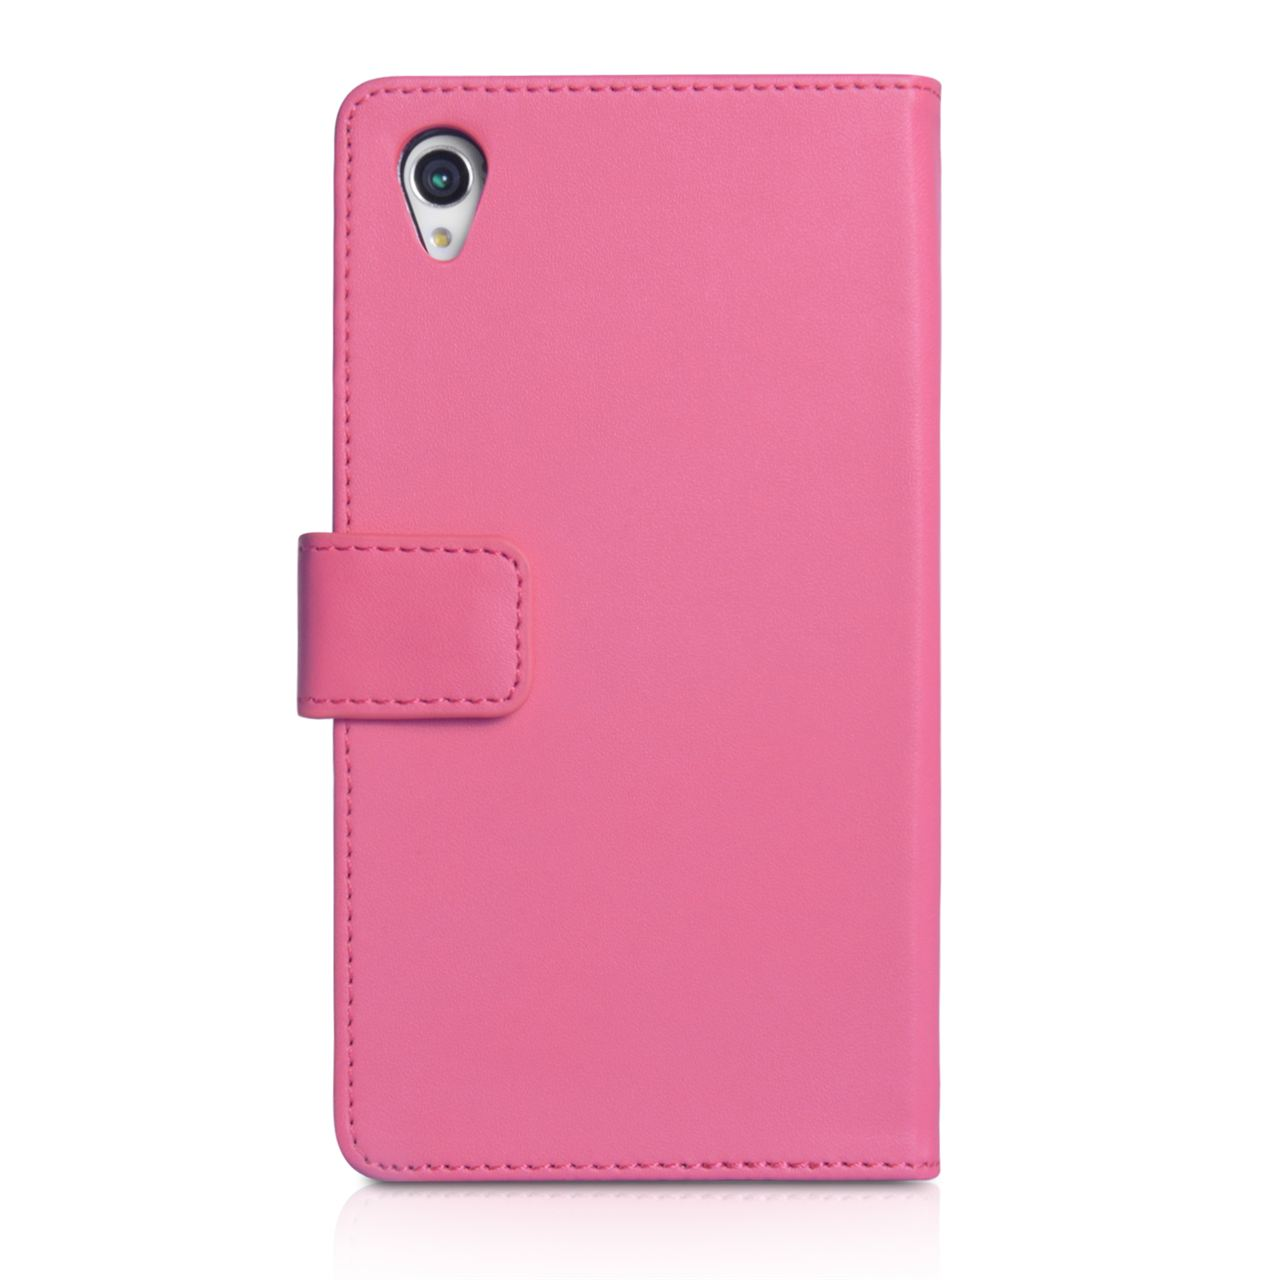 YouSave Accessories Sony Xperia Z1 Leather Effect Wallet - Hot Pink